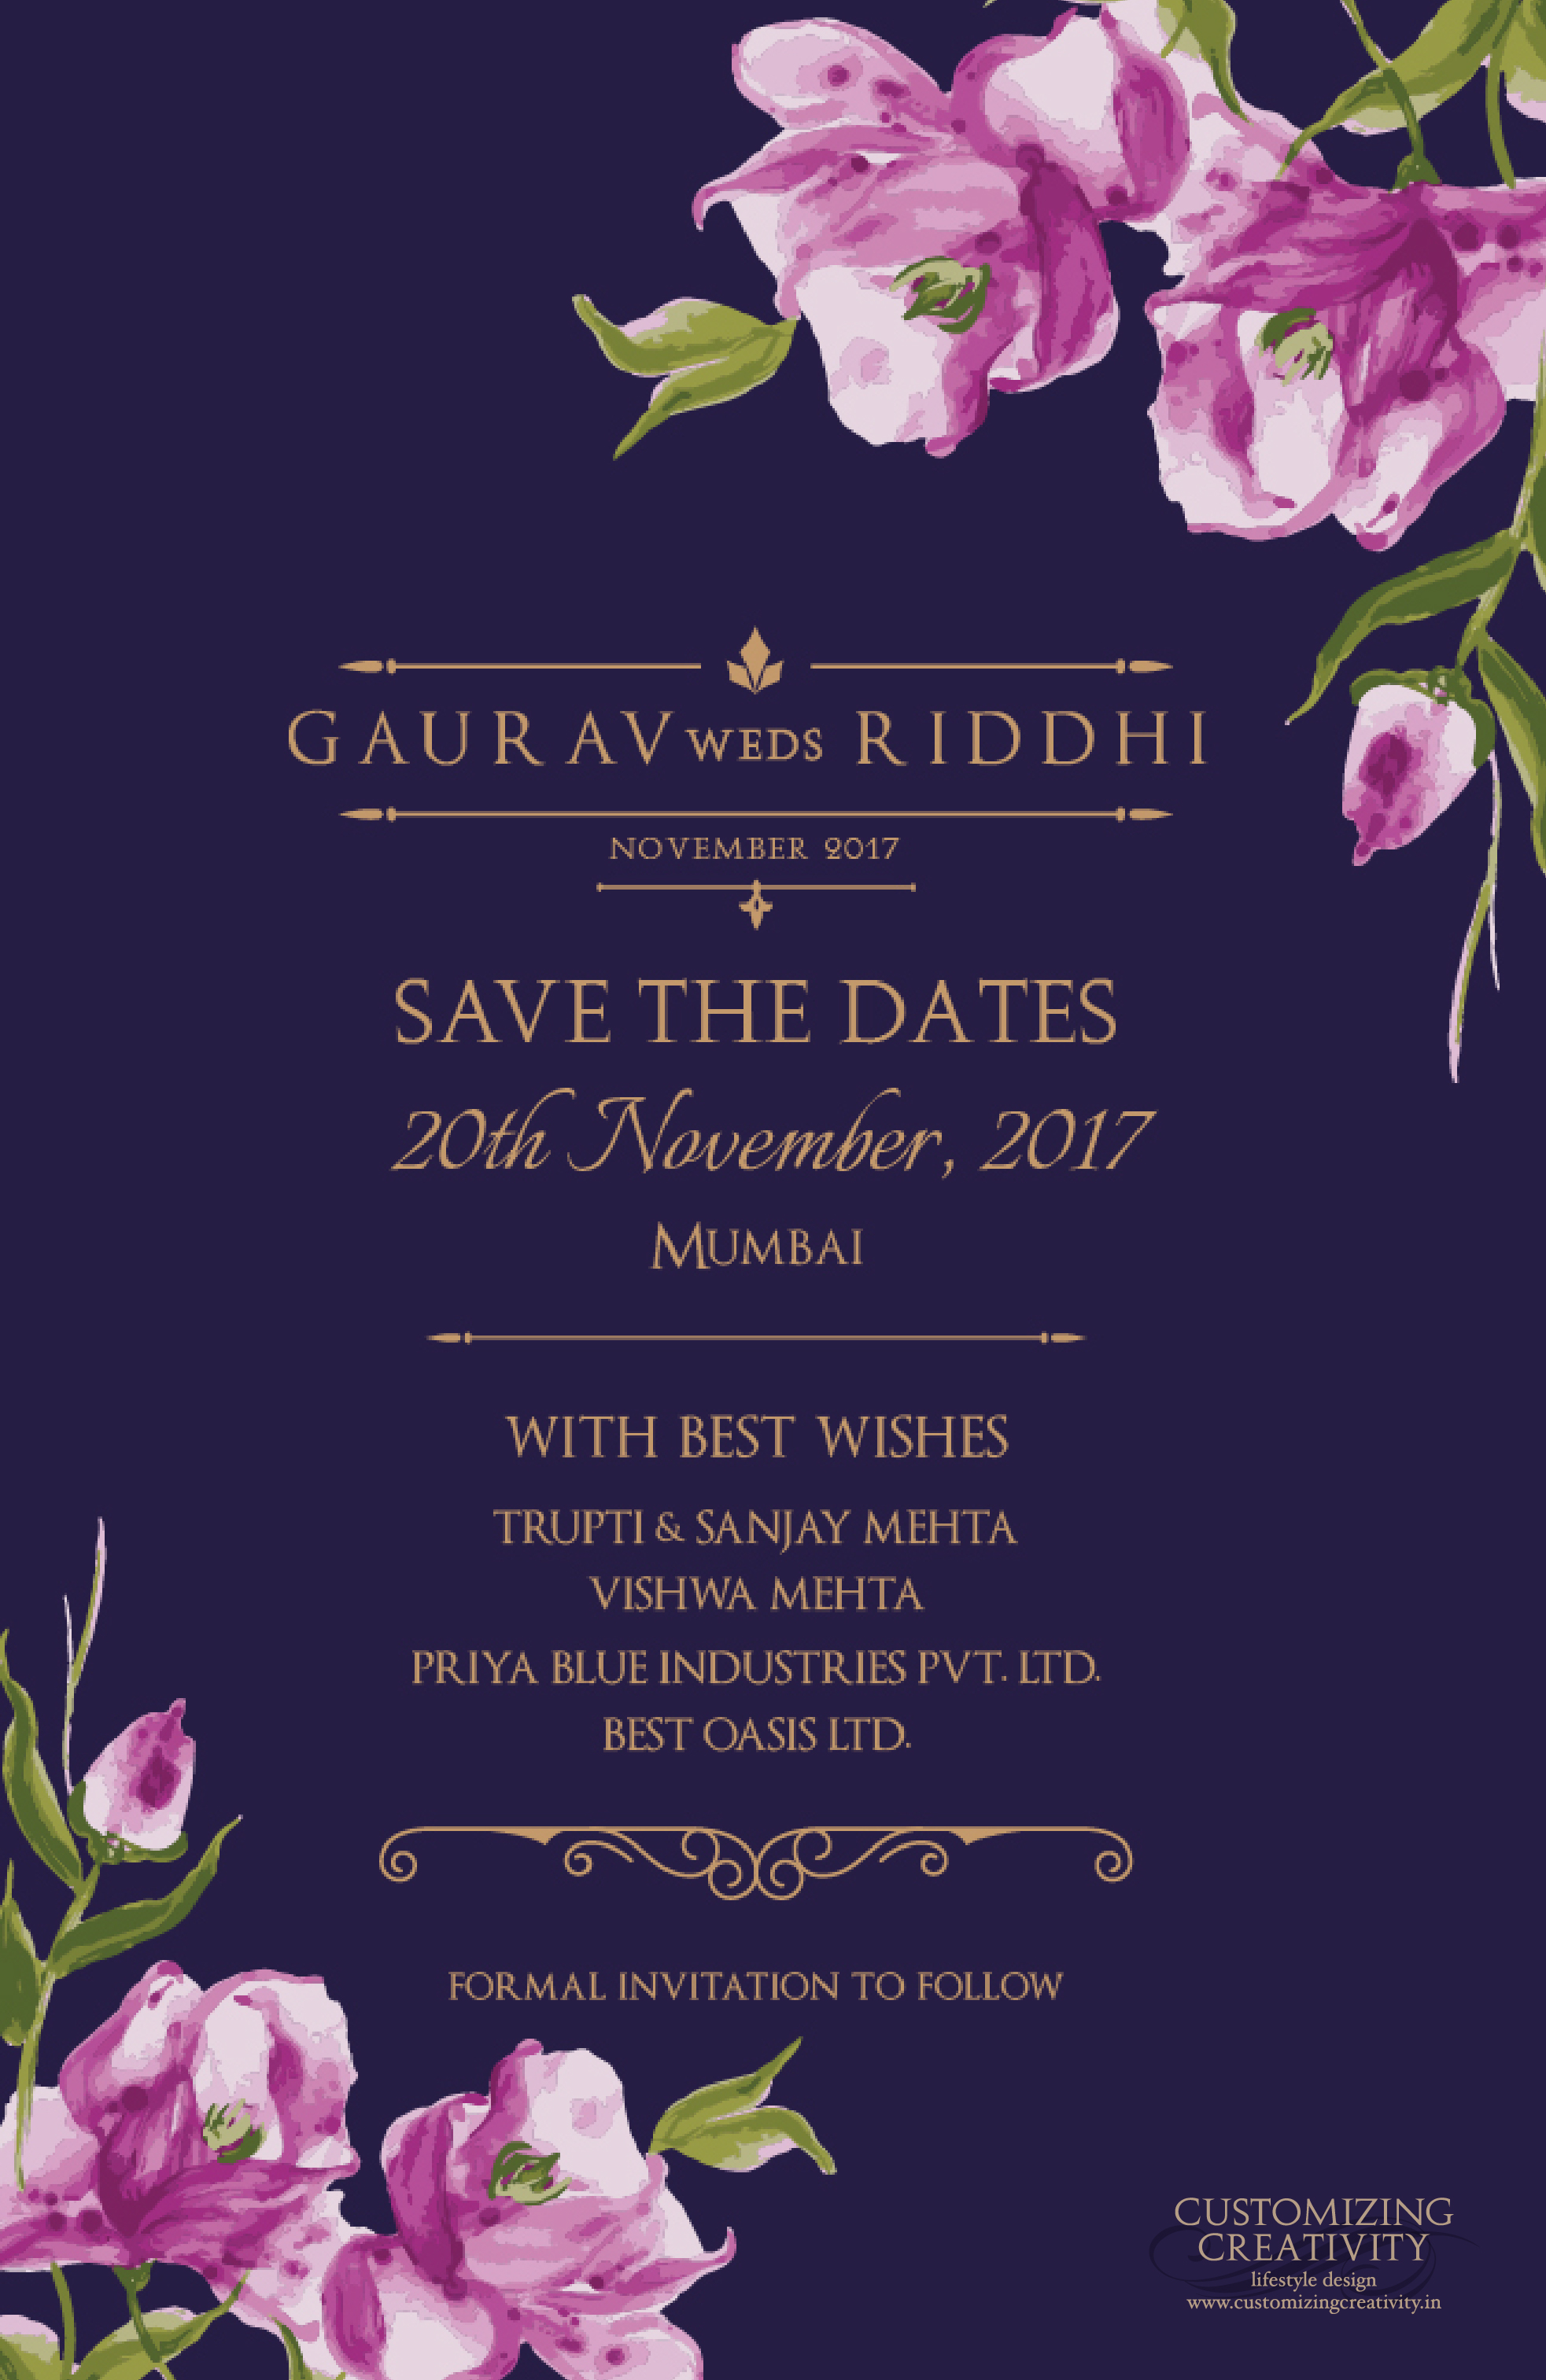 Save the date wedding invite